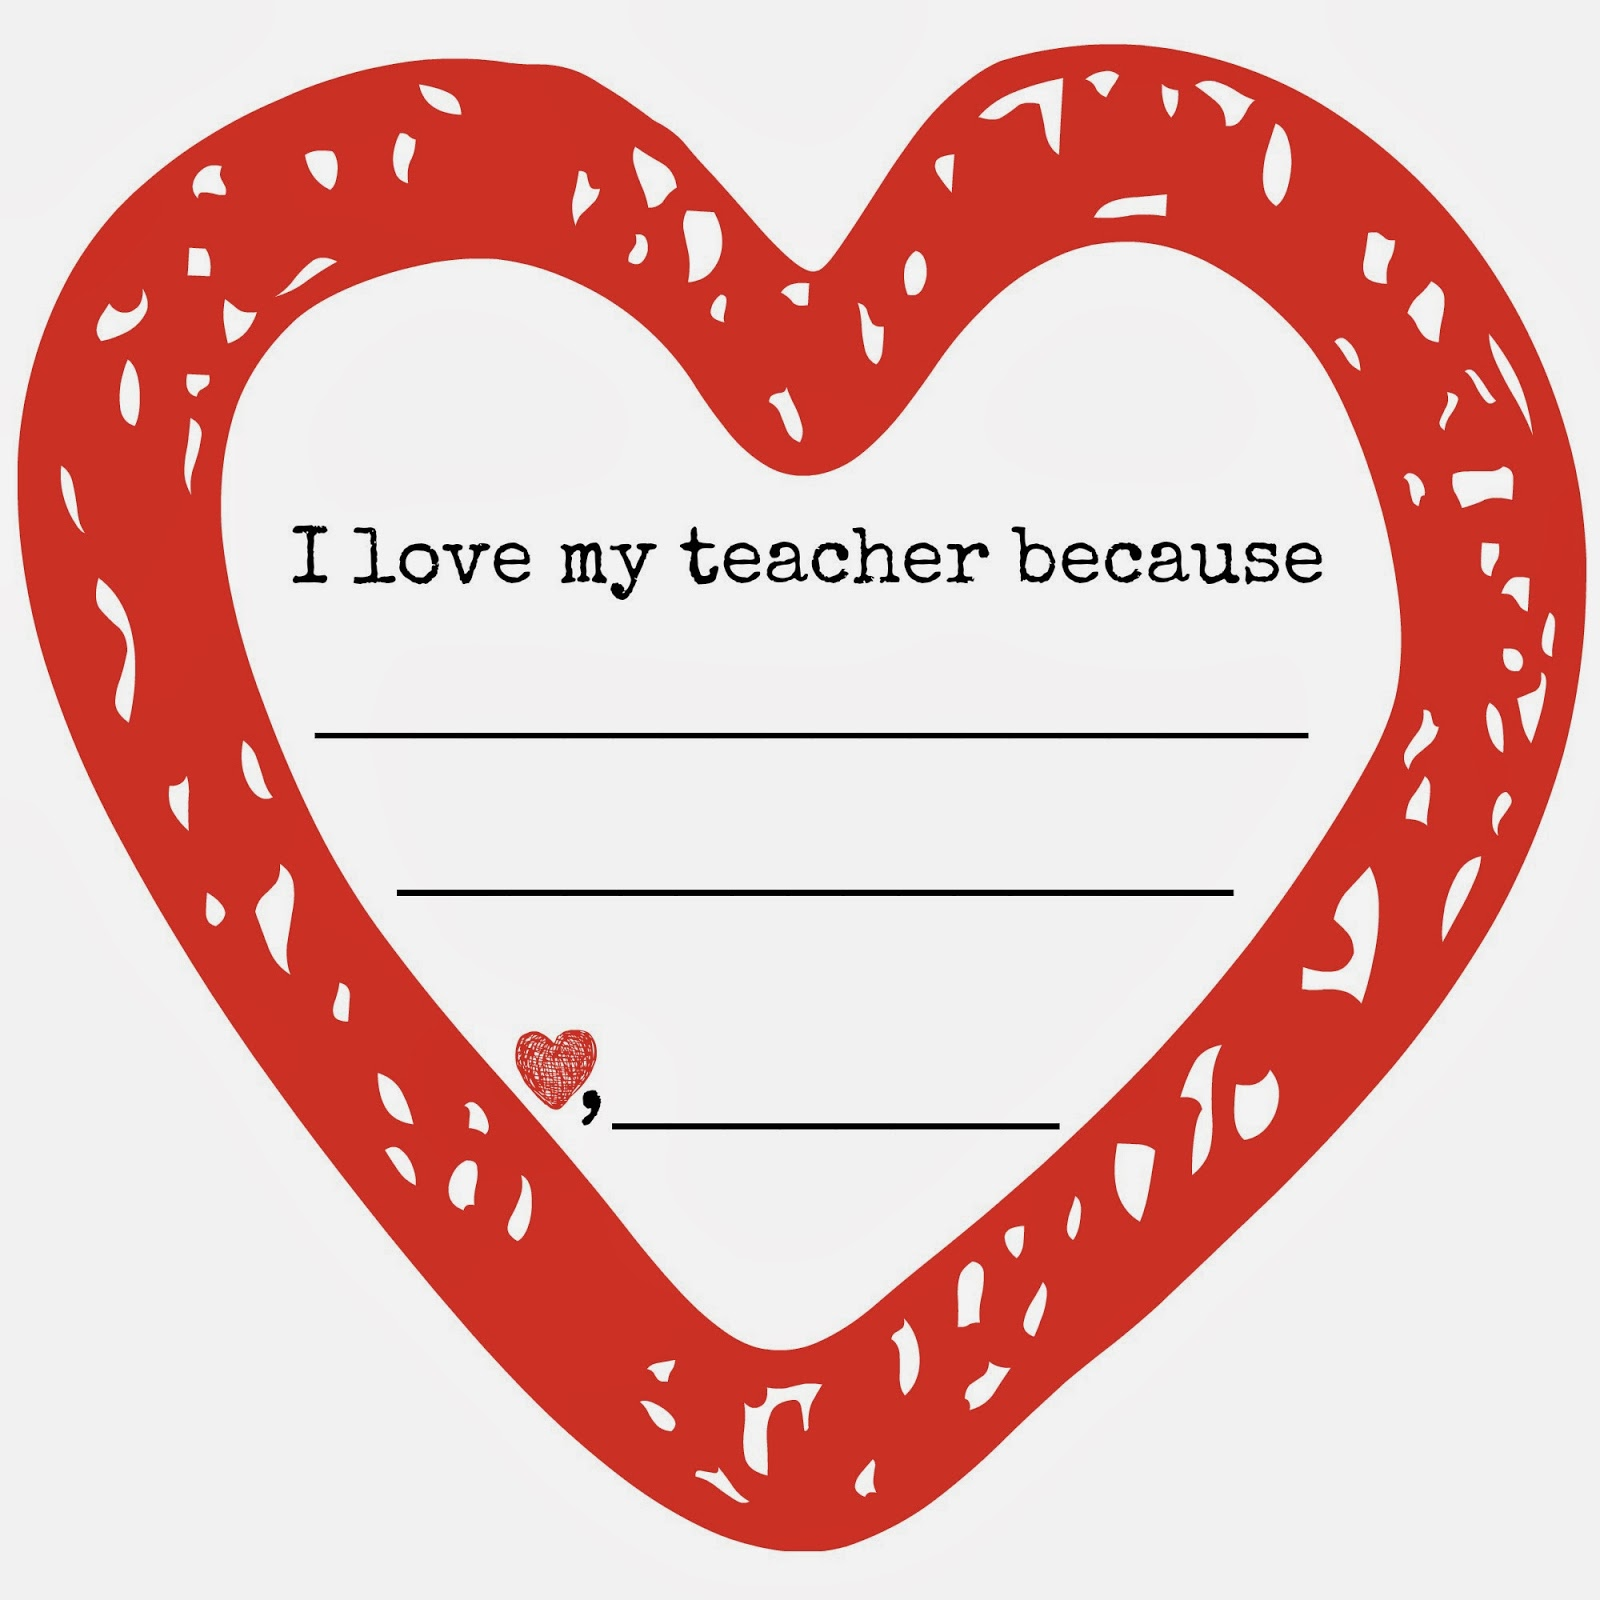 I++my+teacher+beacause+printable Valentine S Party Letter To Parents Template on for party, box project, ice cream party classroom, free printable,